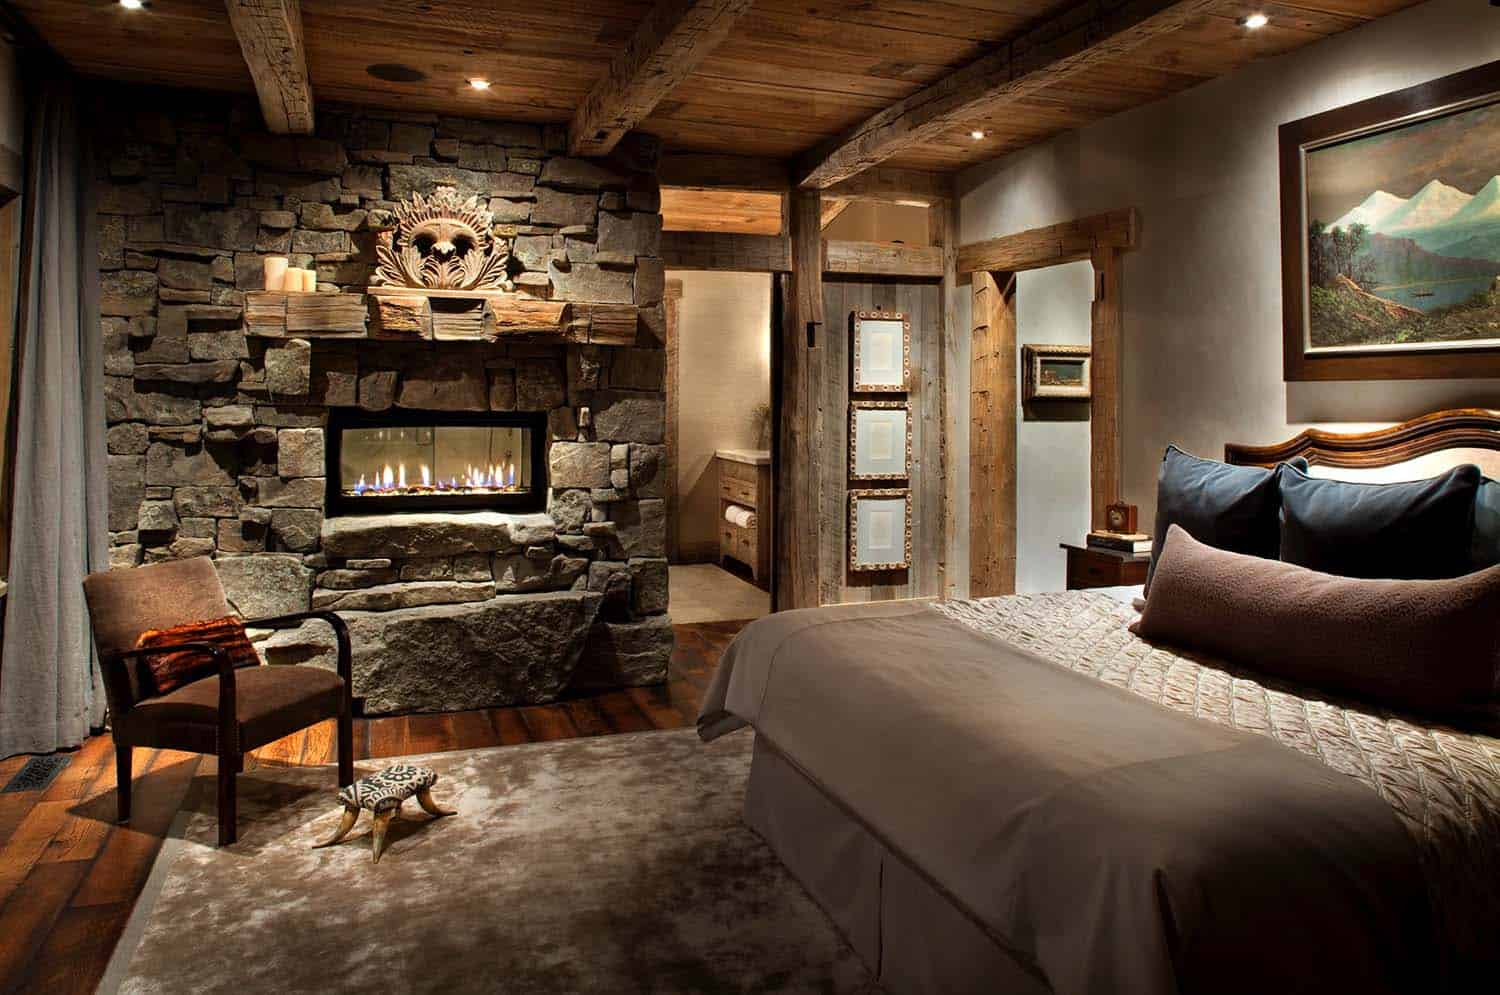 9 Amazing rustic bedrooms styled to feel like a cozy getaway